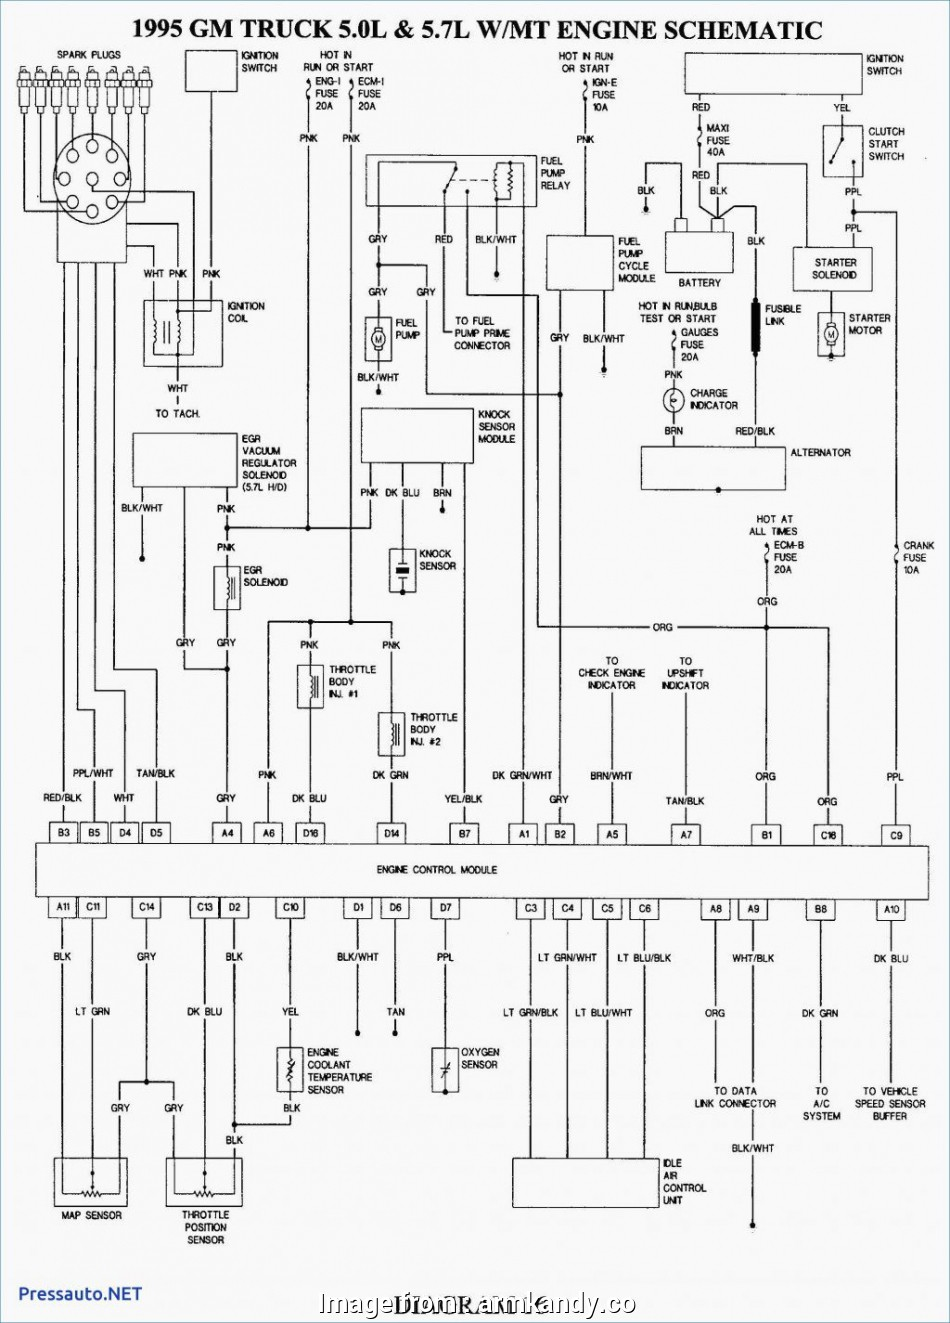 Starter Wiring Diagram, Chevy 350 Nice 92 Chevy, Tbi